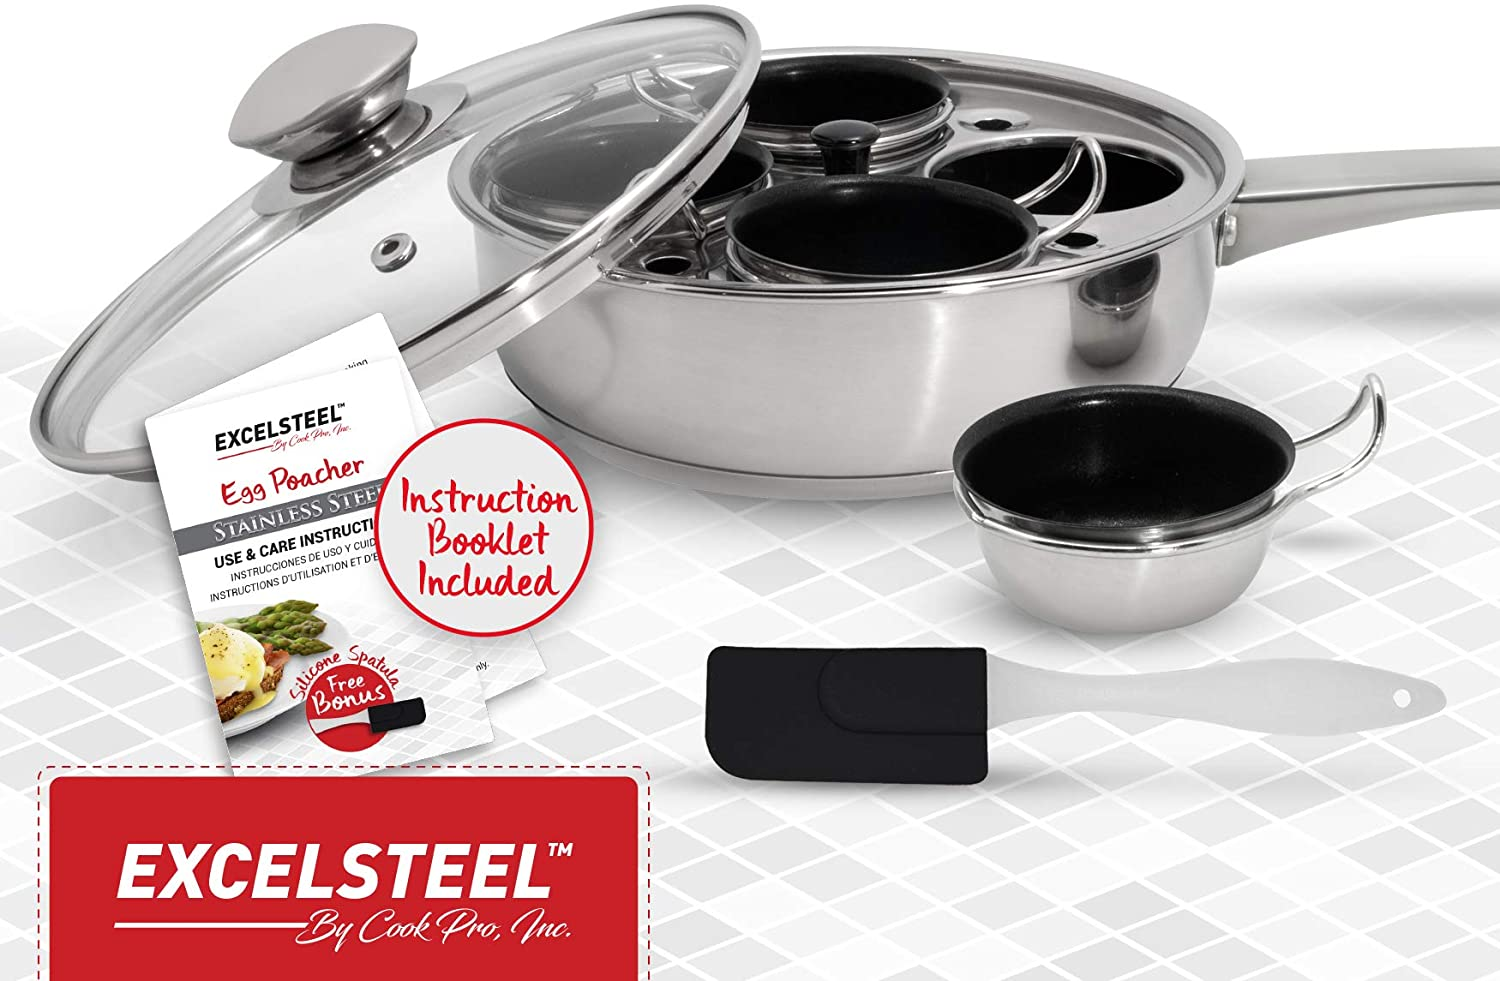 NEW Non Stick Egg Poacher Excelsteel 18//10 Stainless 4 Cups Pan Lid Handle